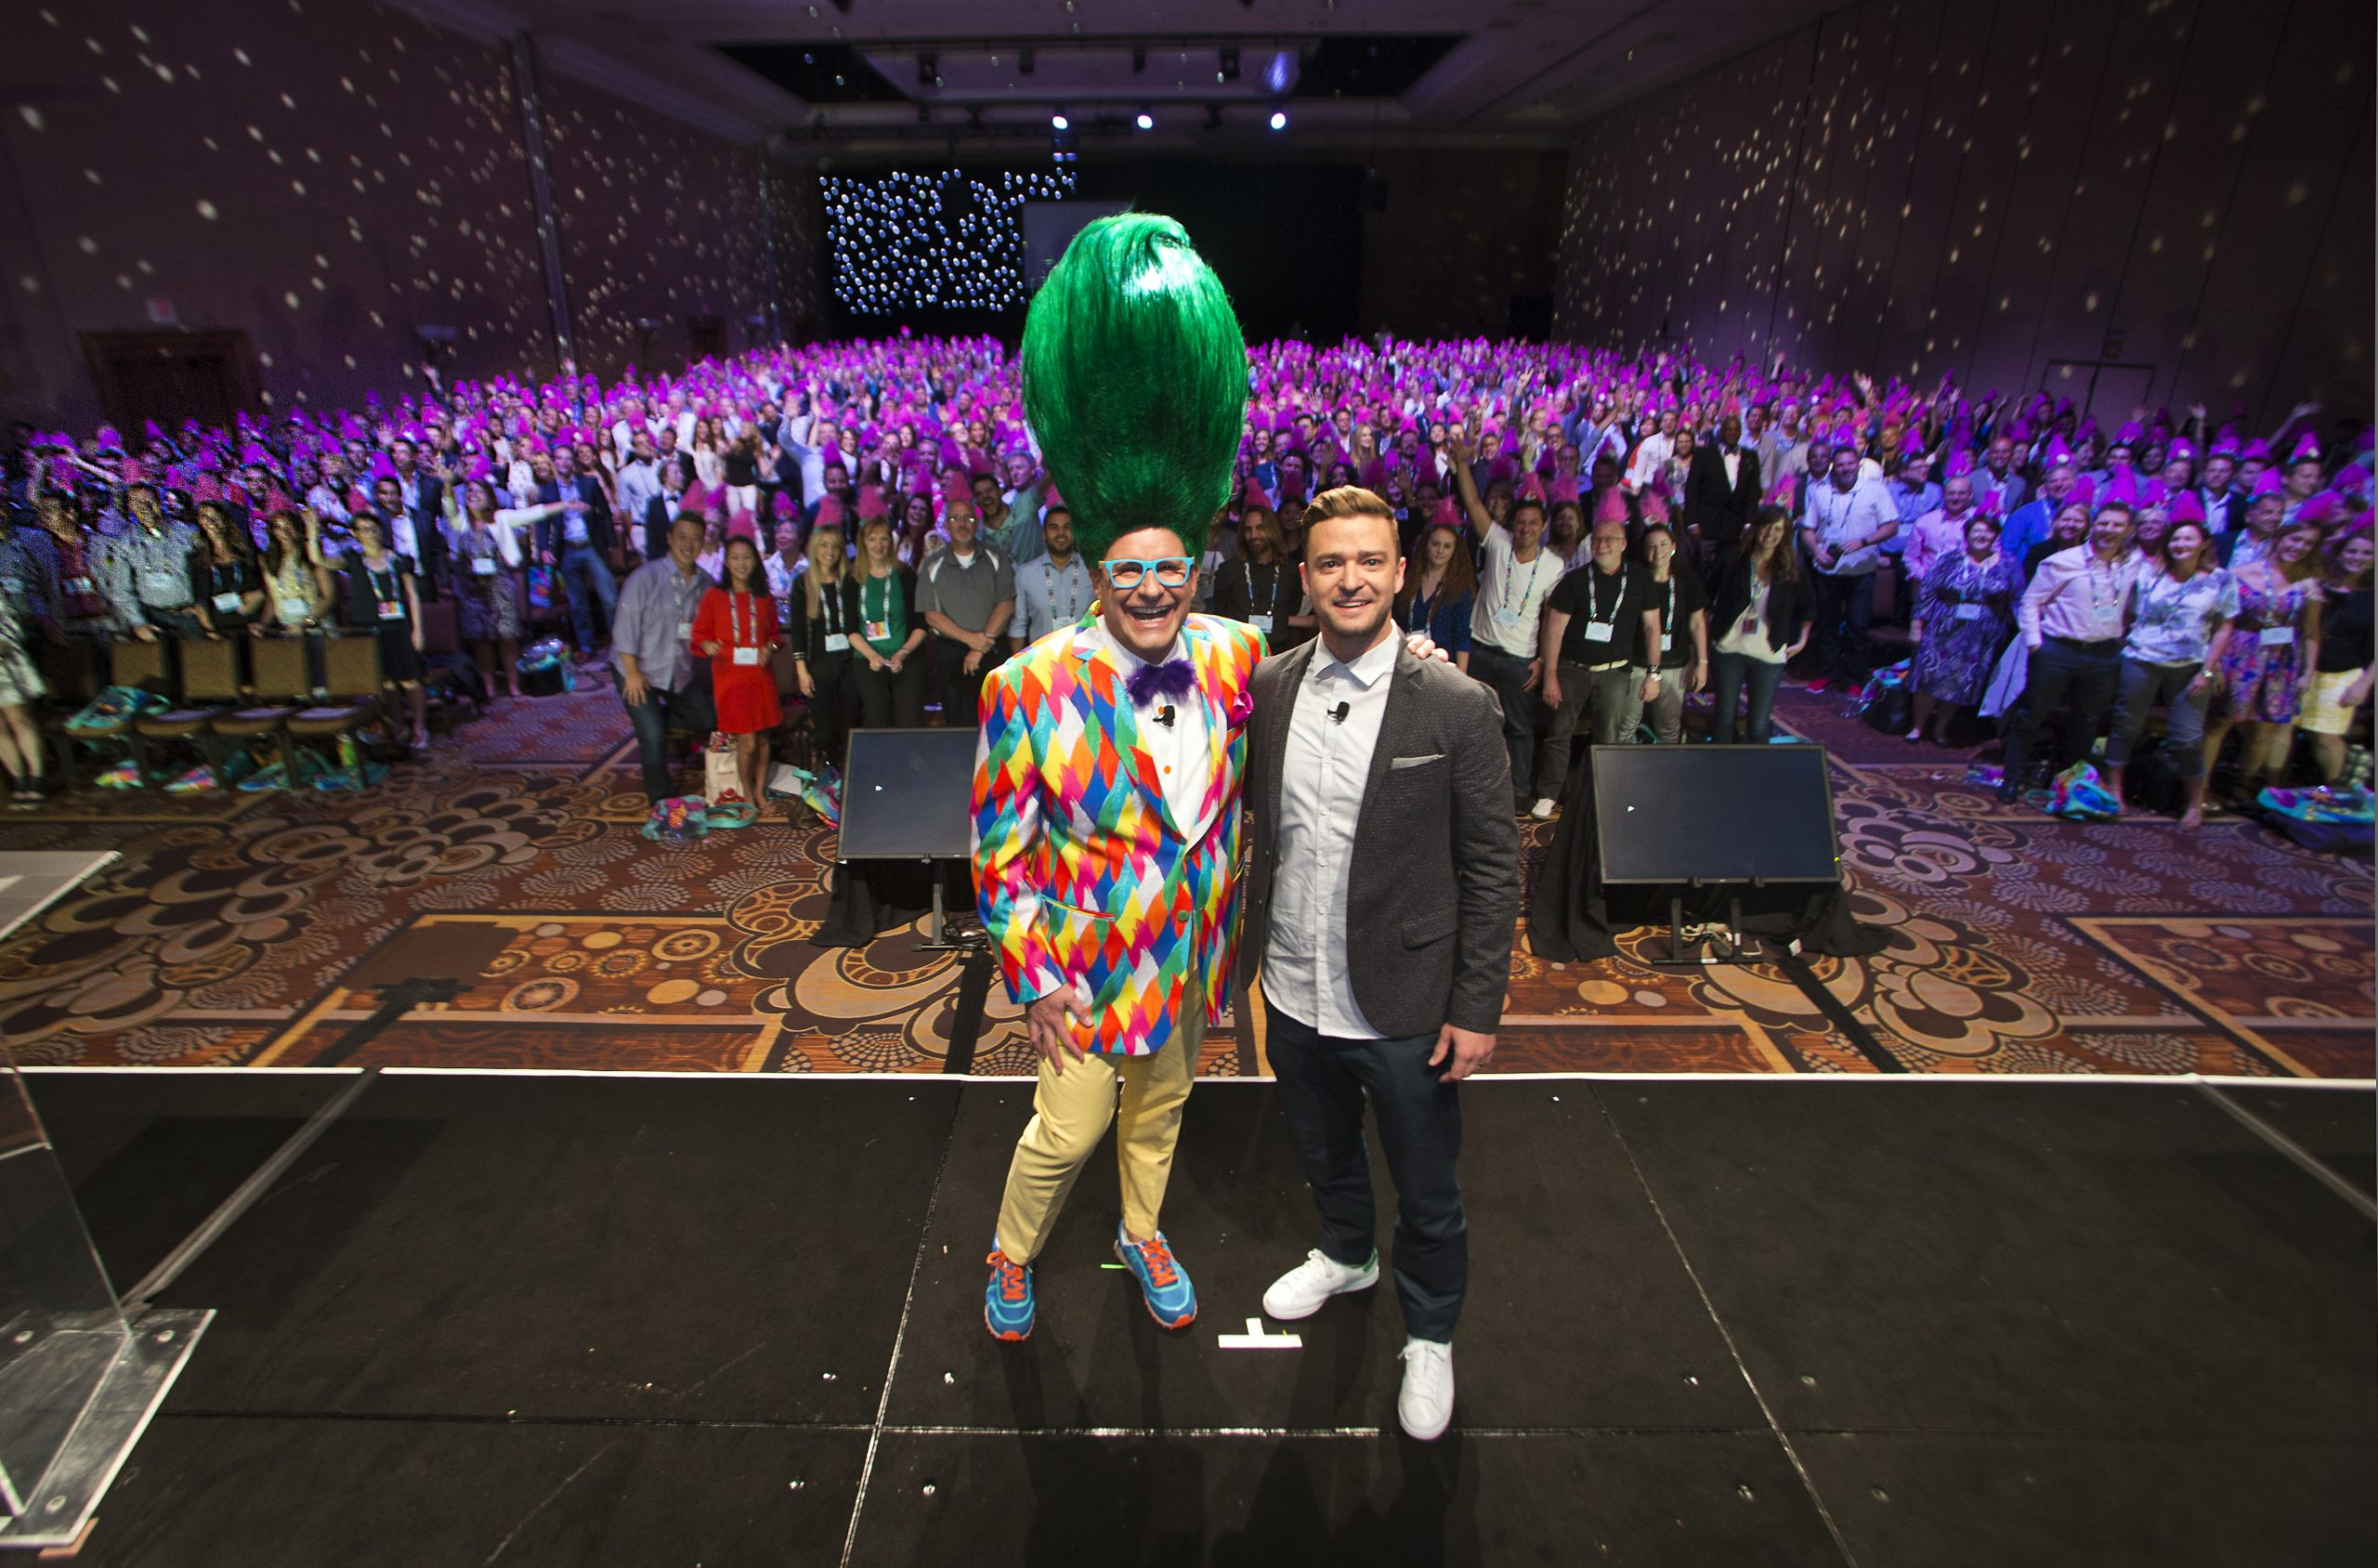 """Jim Fielding, the current head of global consumer products at DreamWorks, takes an entire room """"selfie"""" with performer Justin Timberlake during their annual DreamWorks Entertainment Celebration at the Mandalay Bay on Tuesday, June 21, 2016. . L.E. Baskow"""